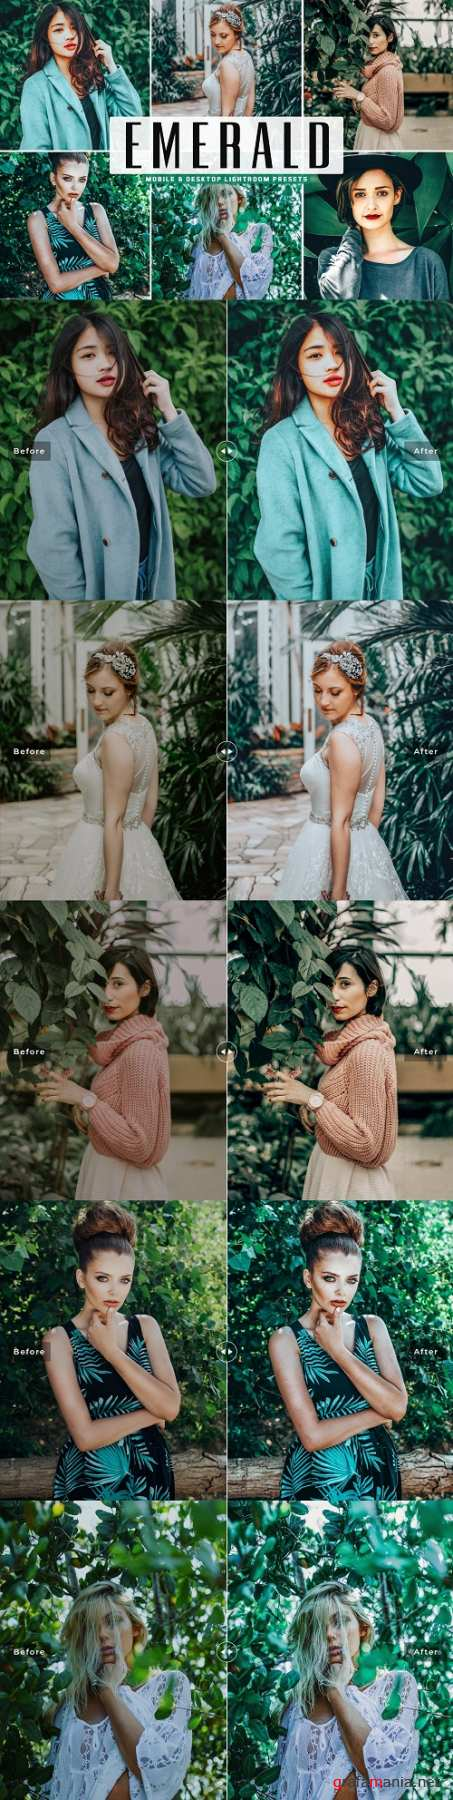 Emerald Lightroom Presets Pack - 4663808 - Mobile & Desktop